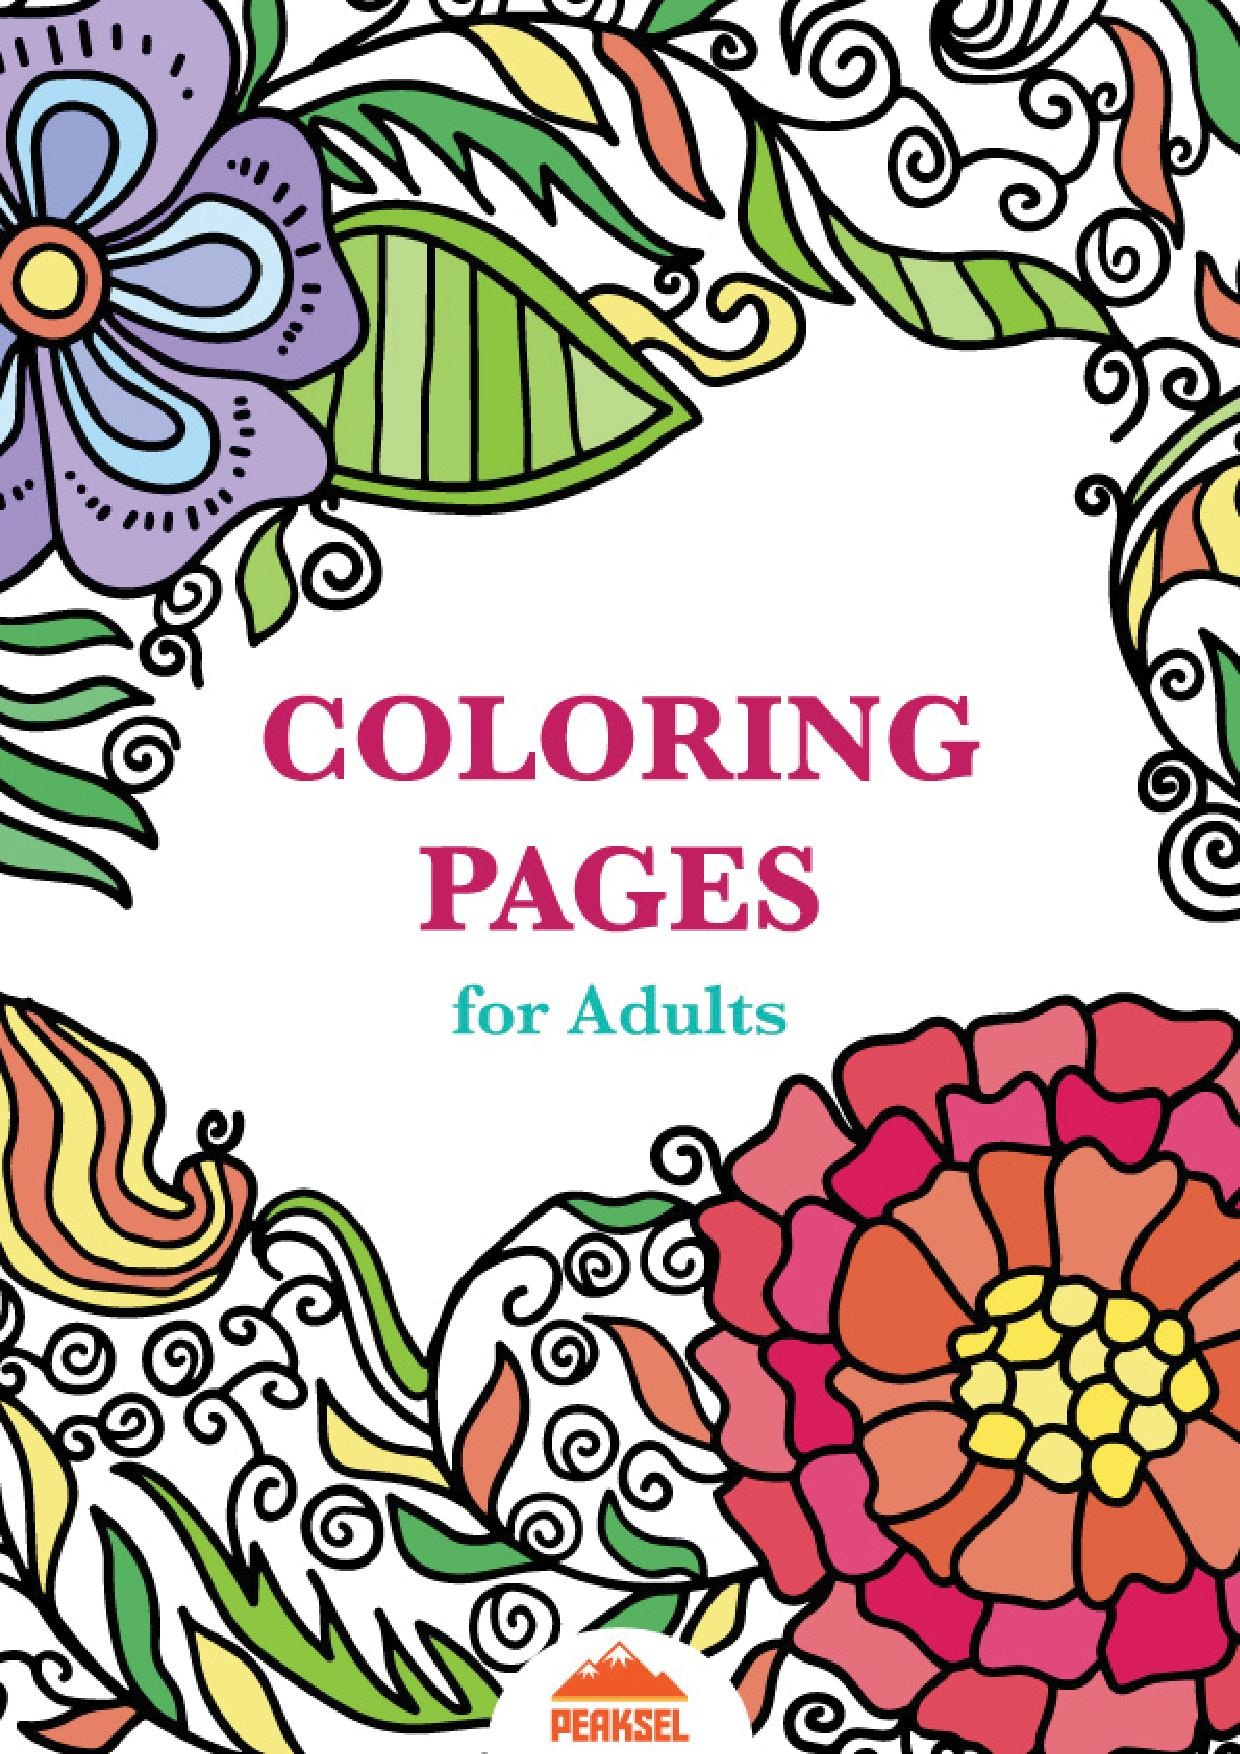 fileprintable coloring pages for adults free adult coloring bookpdf - Printable Coloring Book Pages